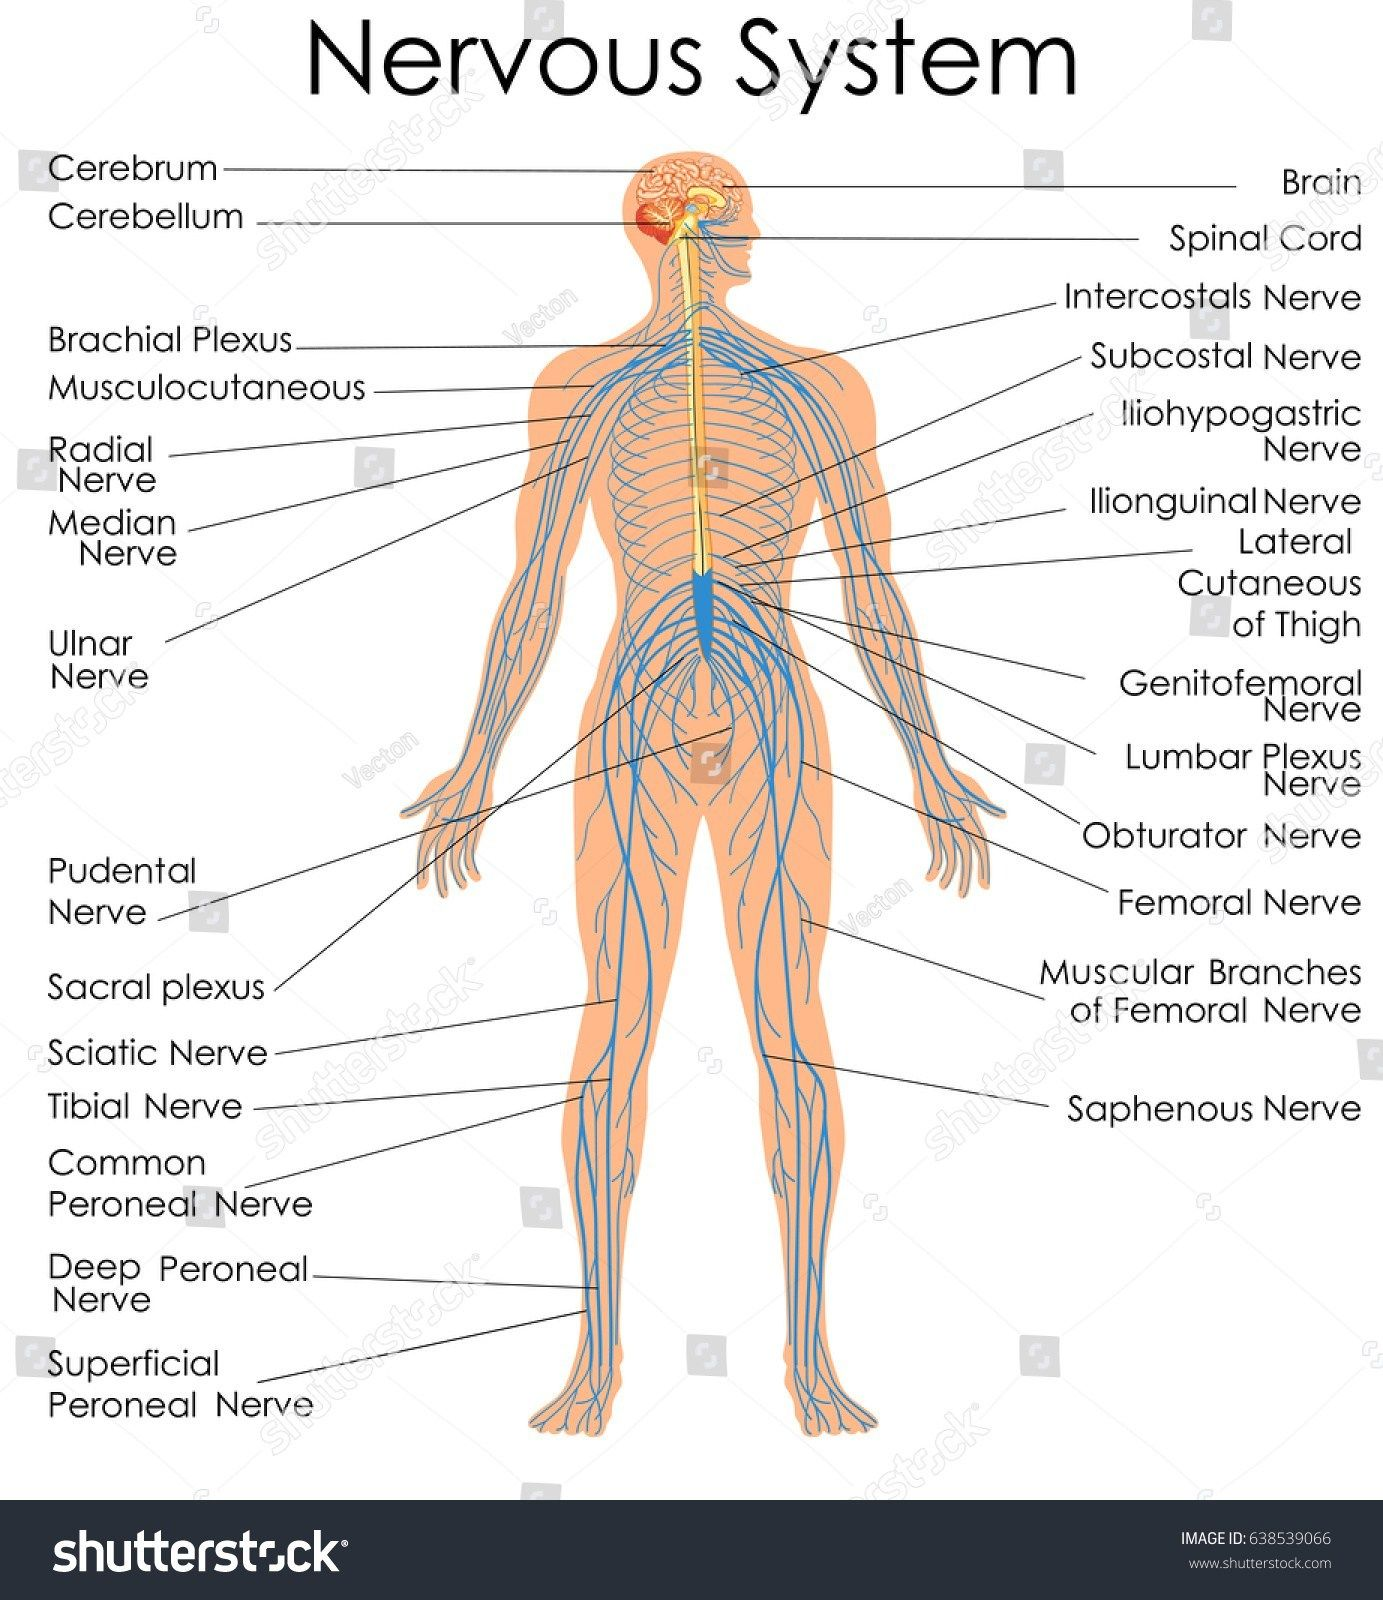 Labeled Picture Of The Nervous System Medical Education